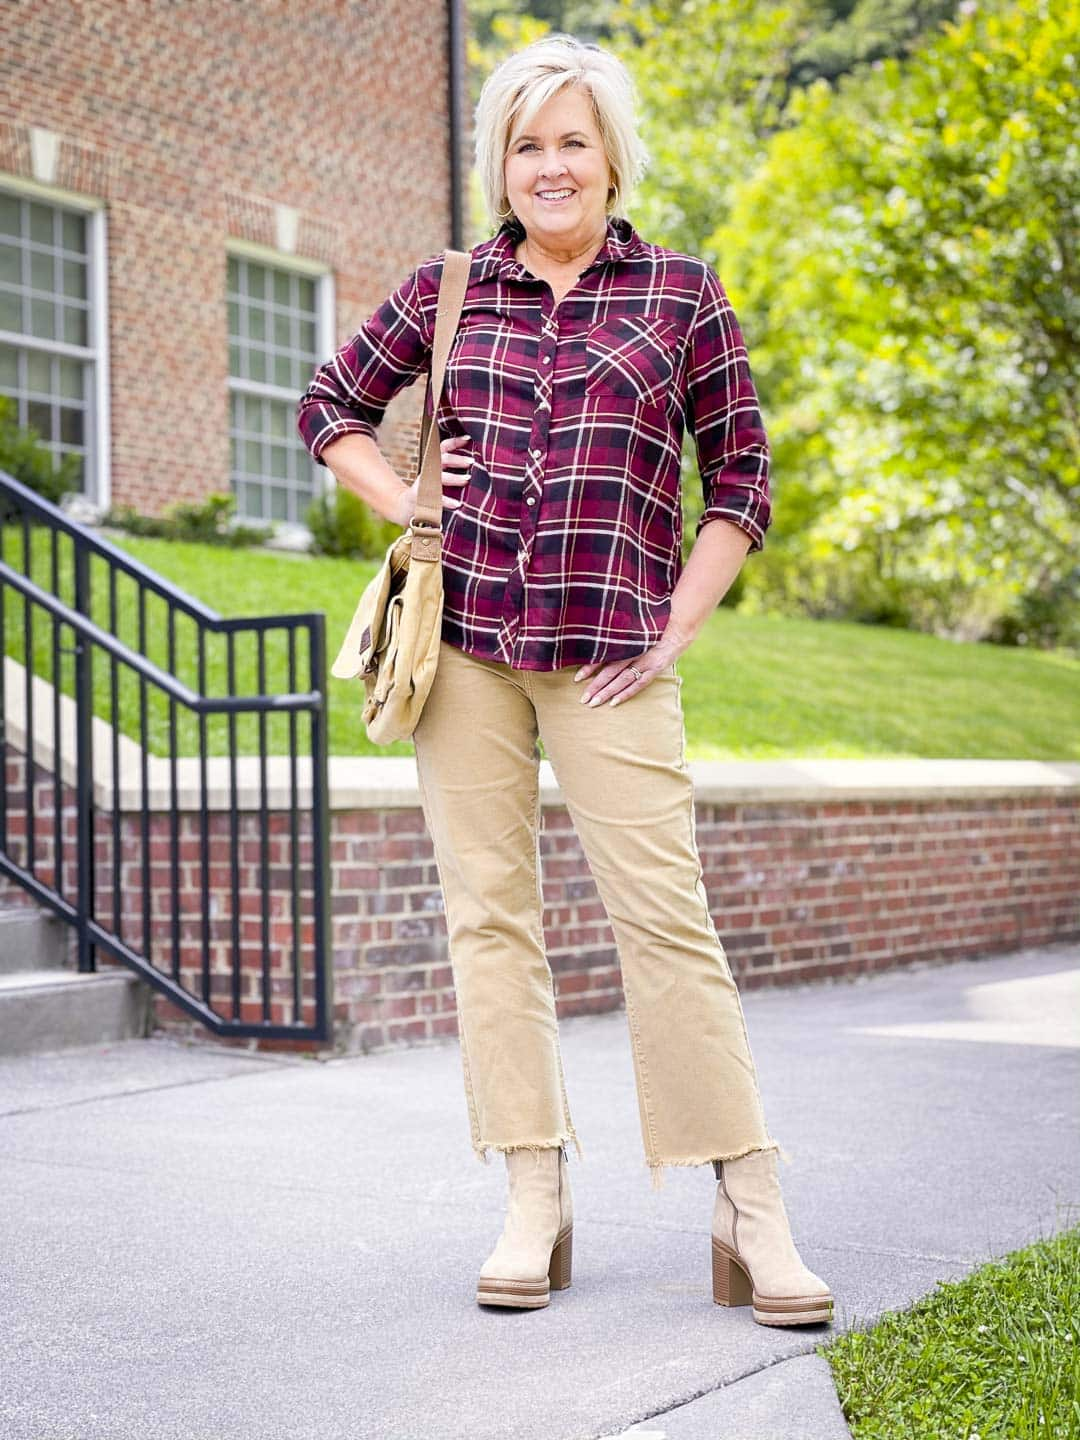 Over 40 Fashion Blogger, Tania Stephens is wearing a plaid flannel shirt with crop flare jeans to sho how to get the most out of your wardrobe